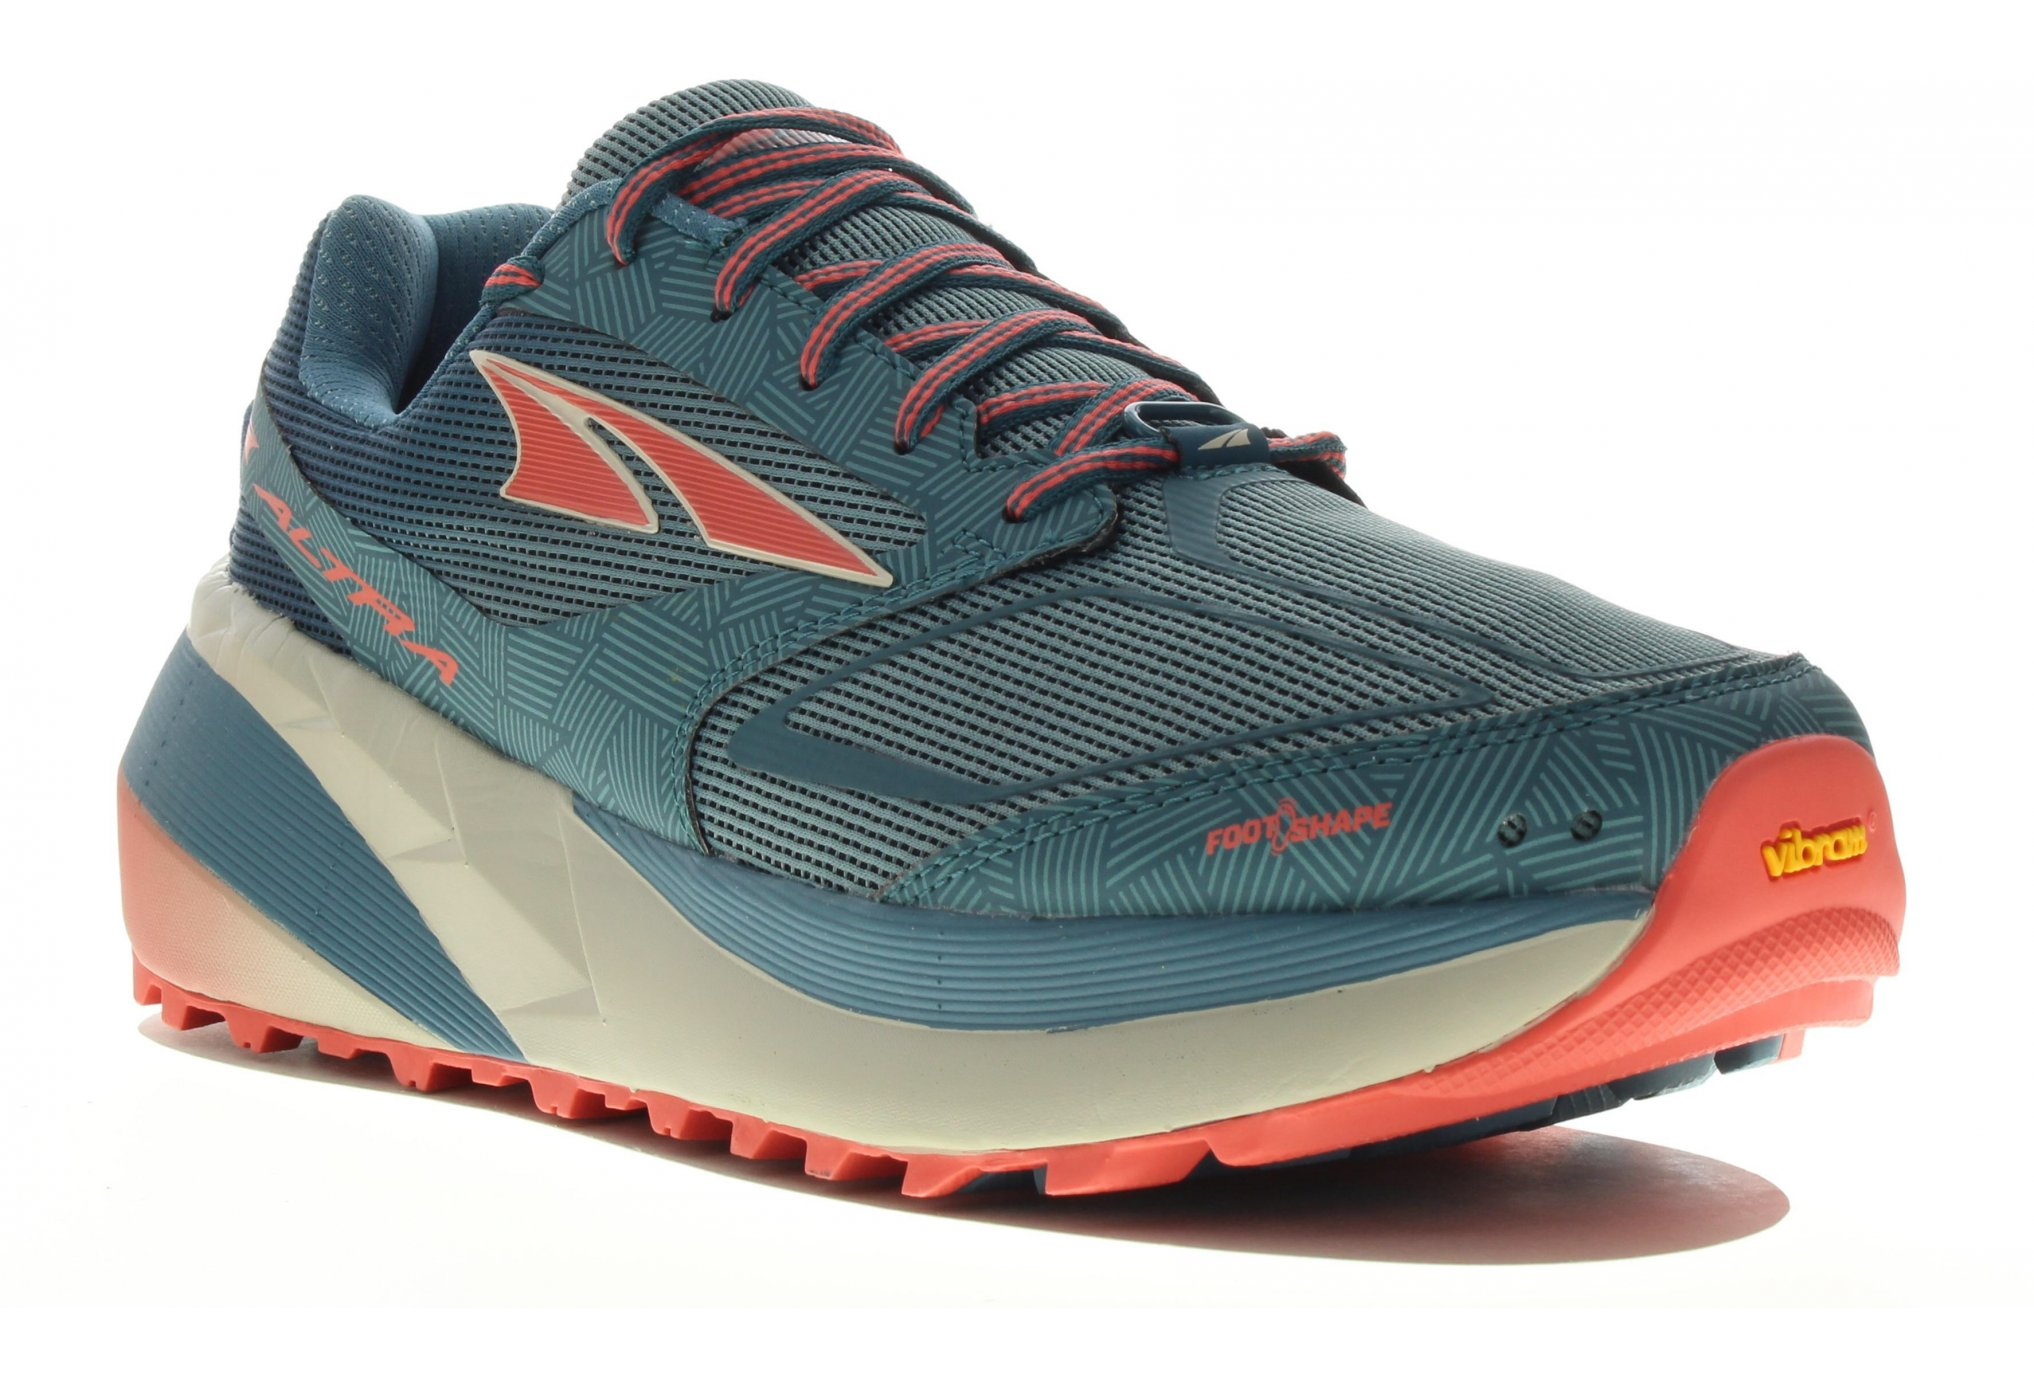 Altra Olympus 3.5 w chaussures running femme